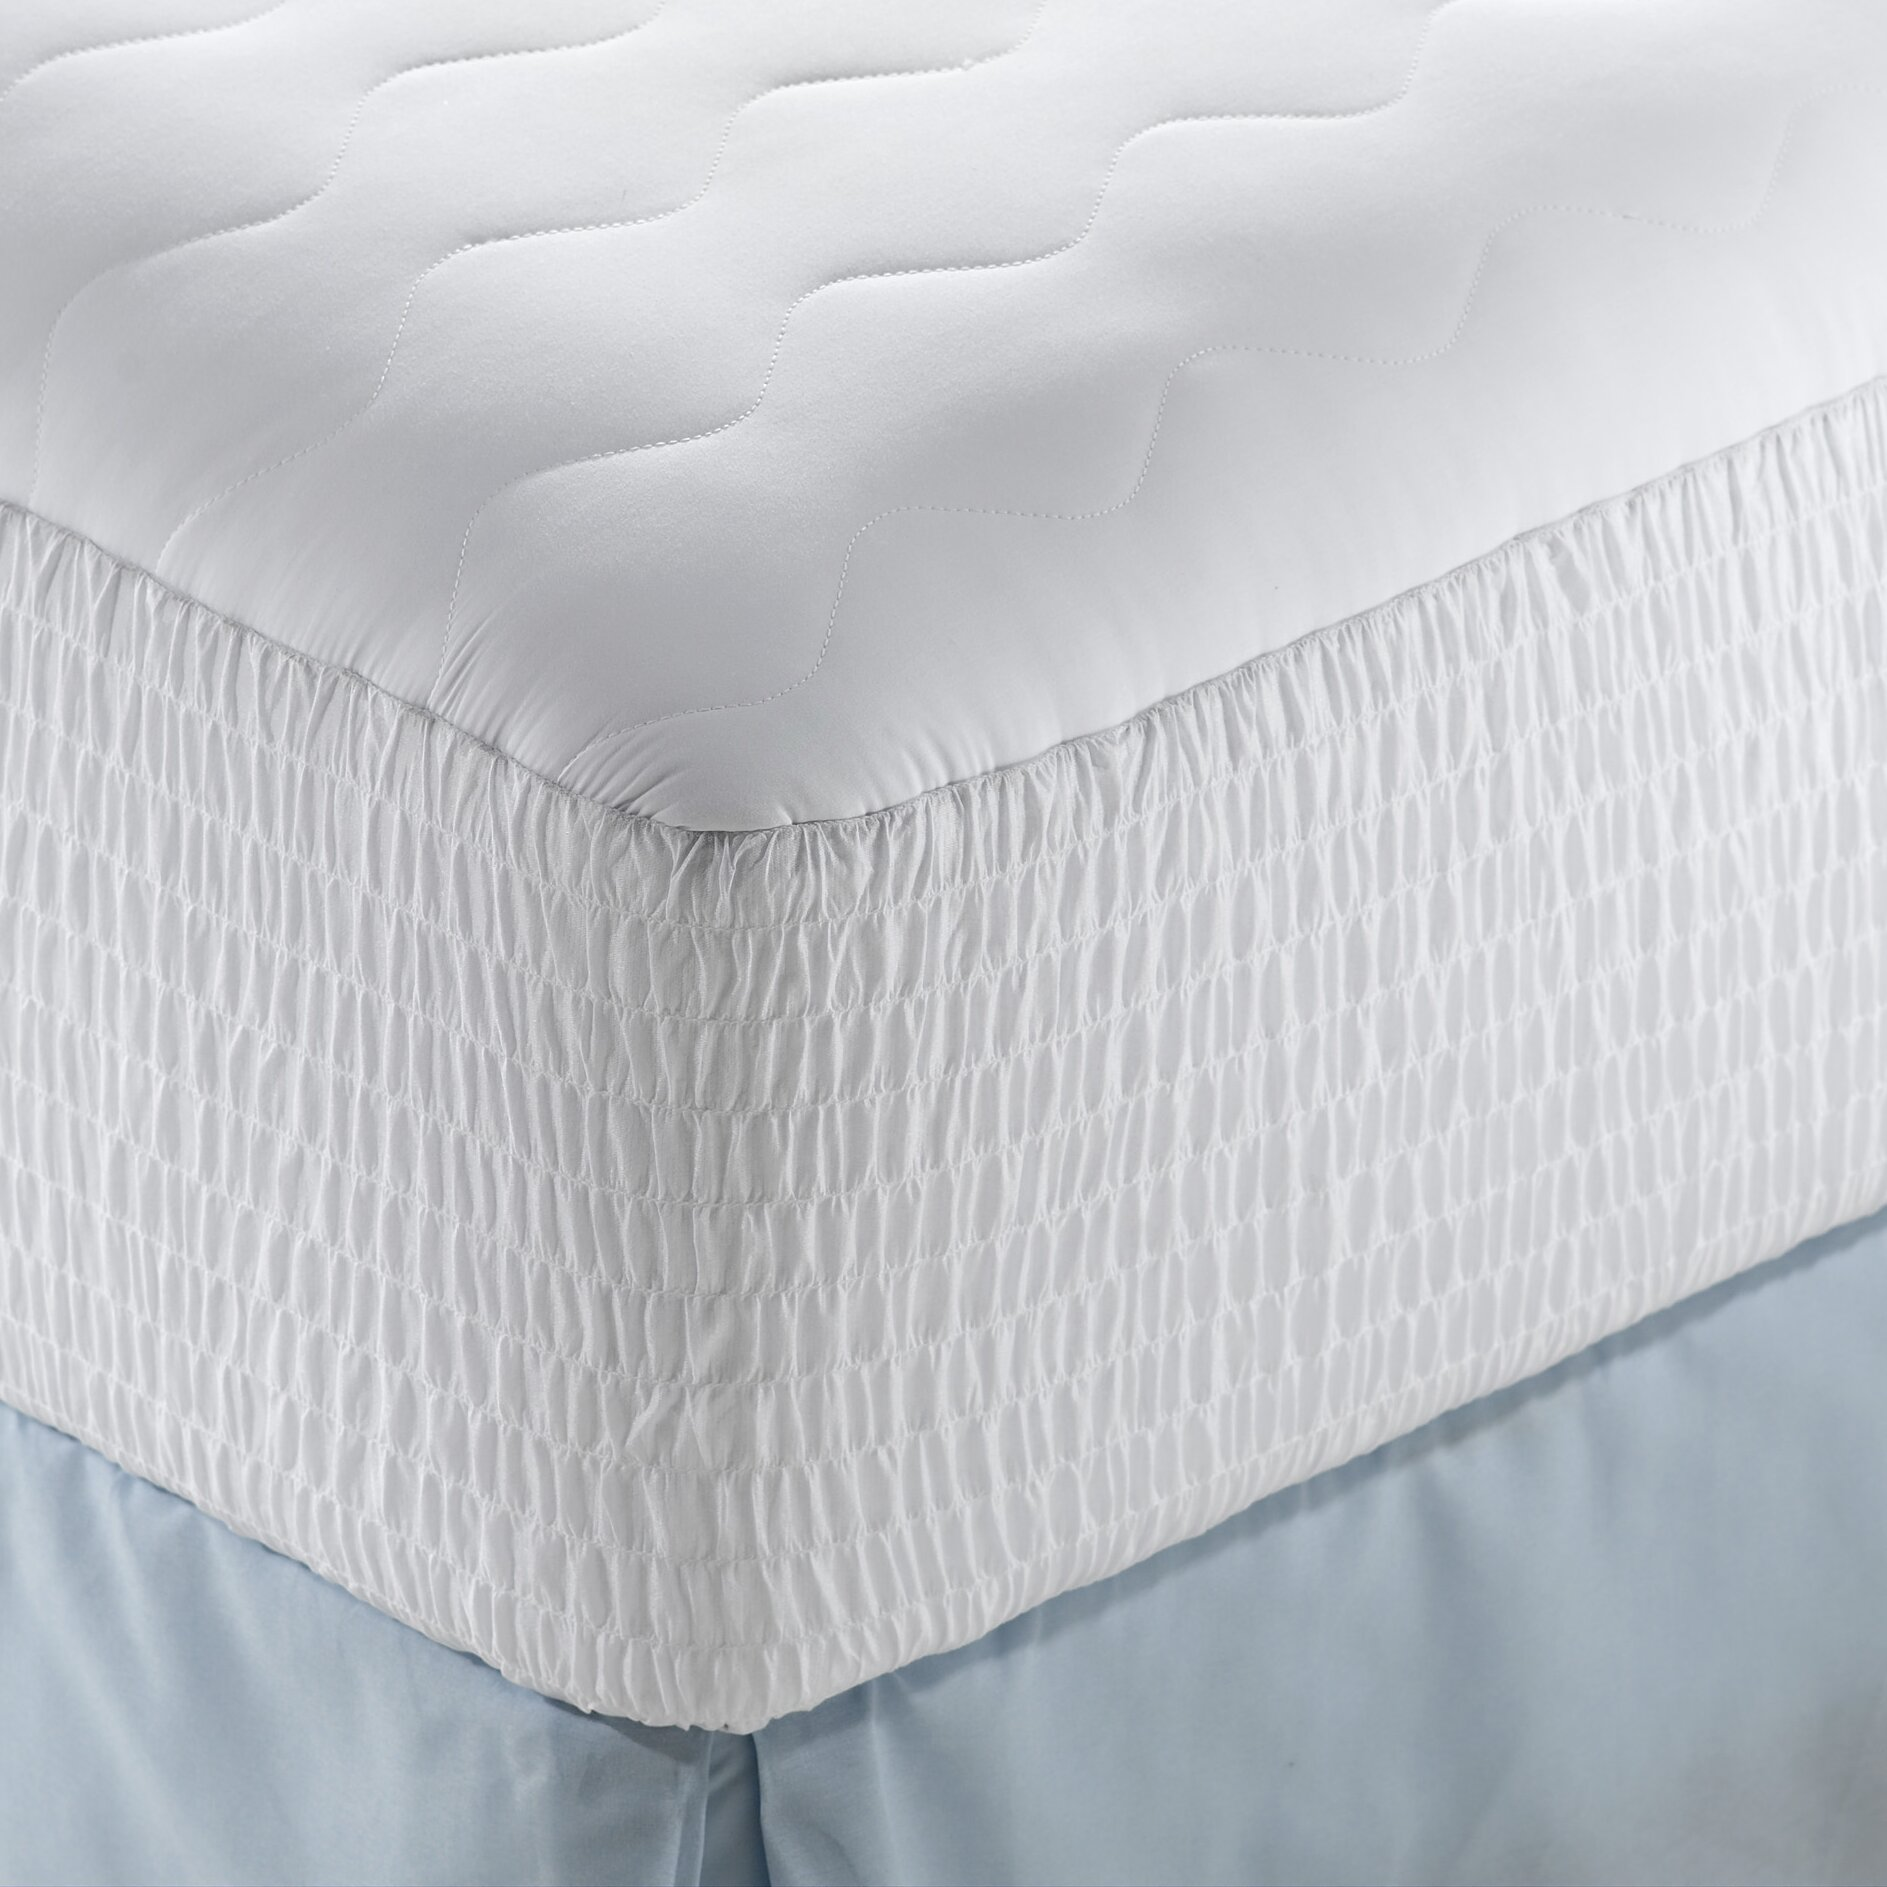 Simmons Beautyrest Microfiber Highloft Top Mattress Pad